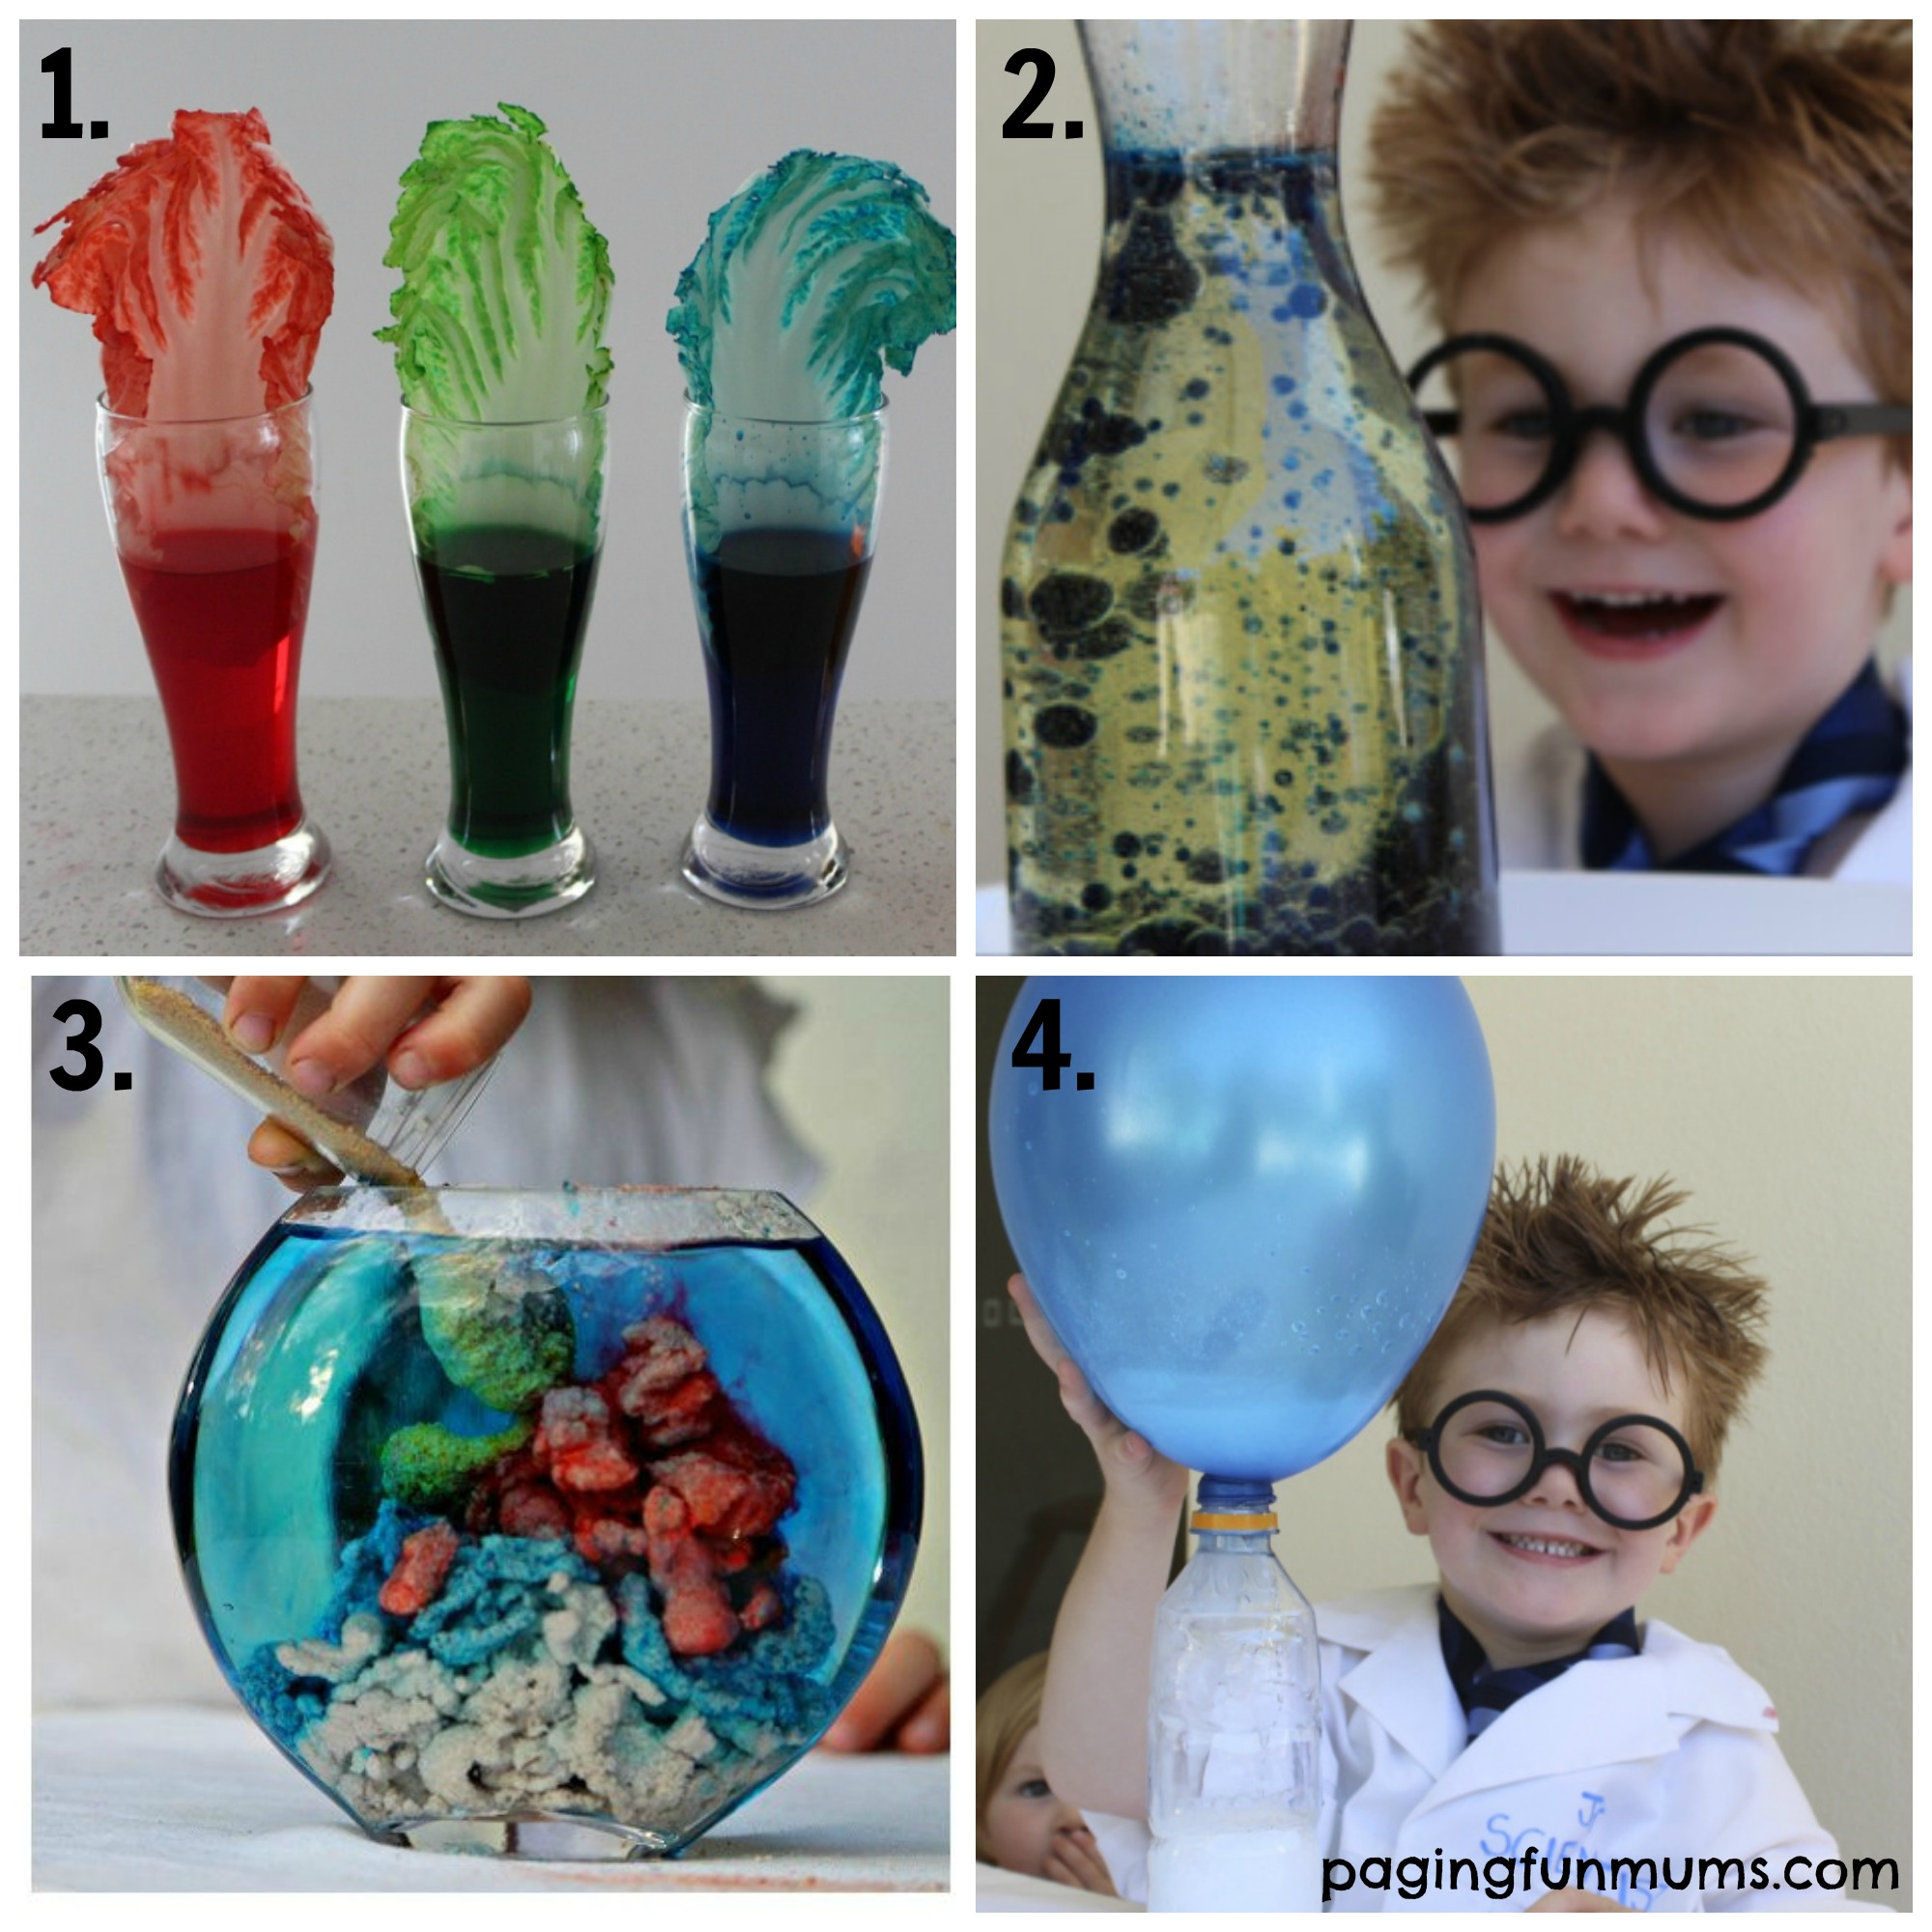 21 + Fun Science Experiments for Kids 1-4 - Paging Fun Mums